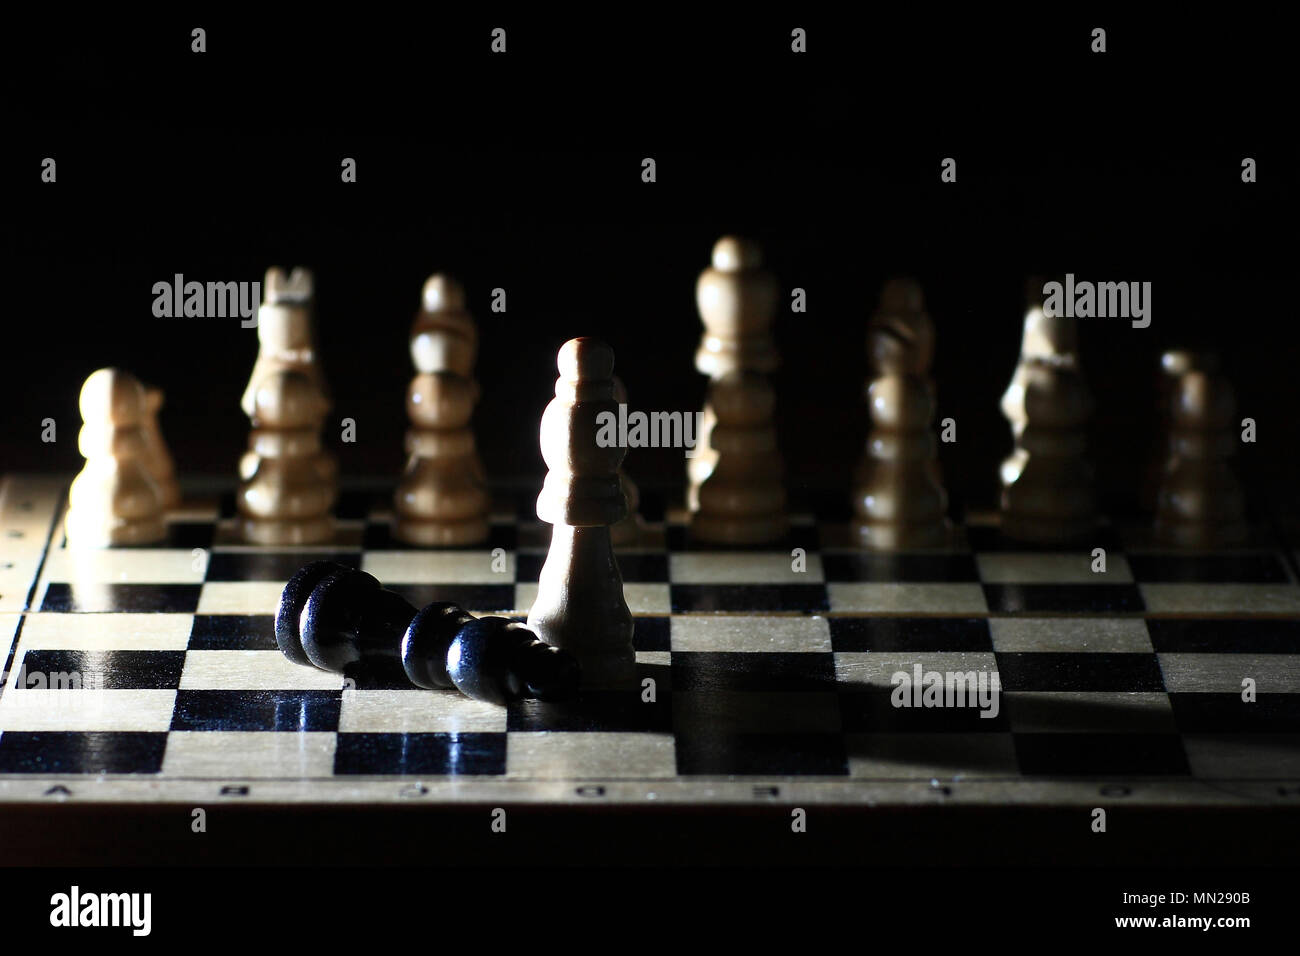 Composition with chessmen in the glossy chessboard - Stock Image